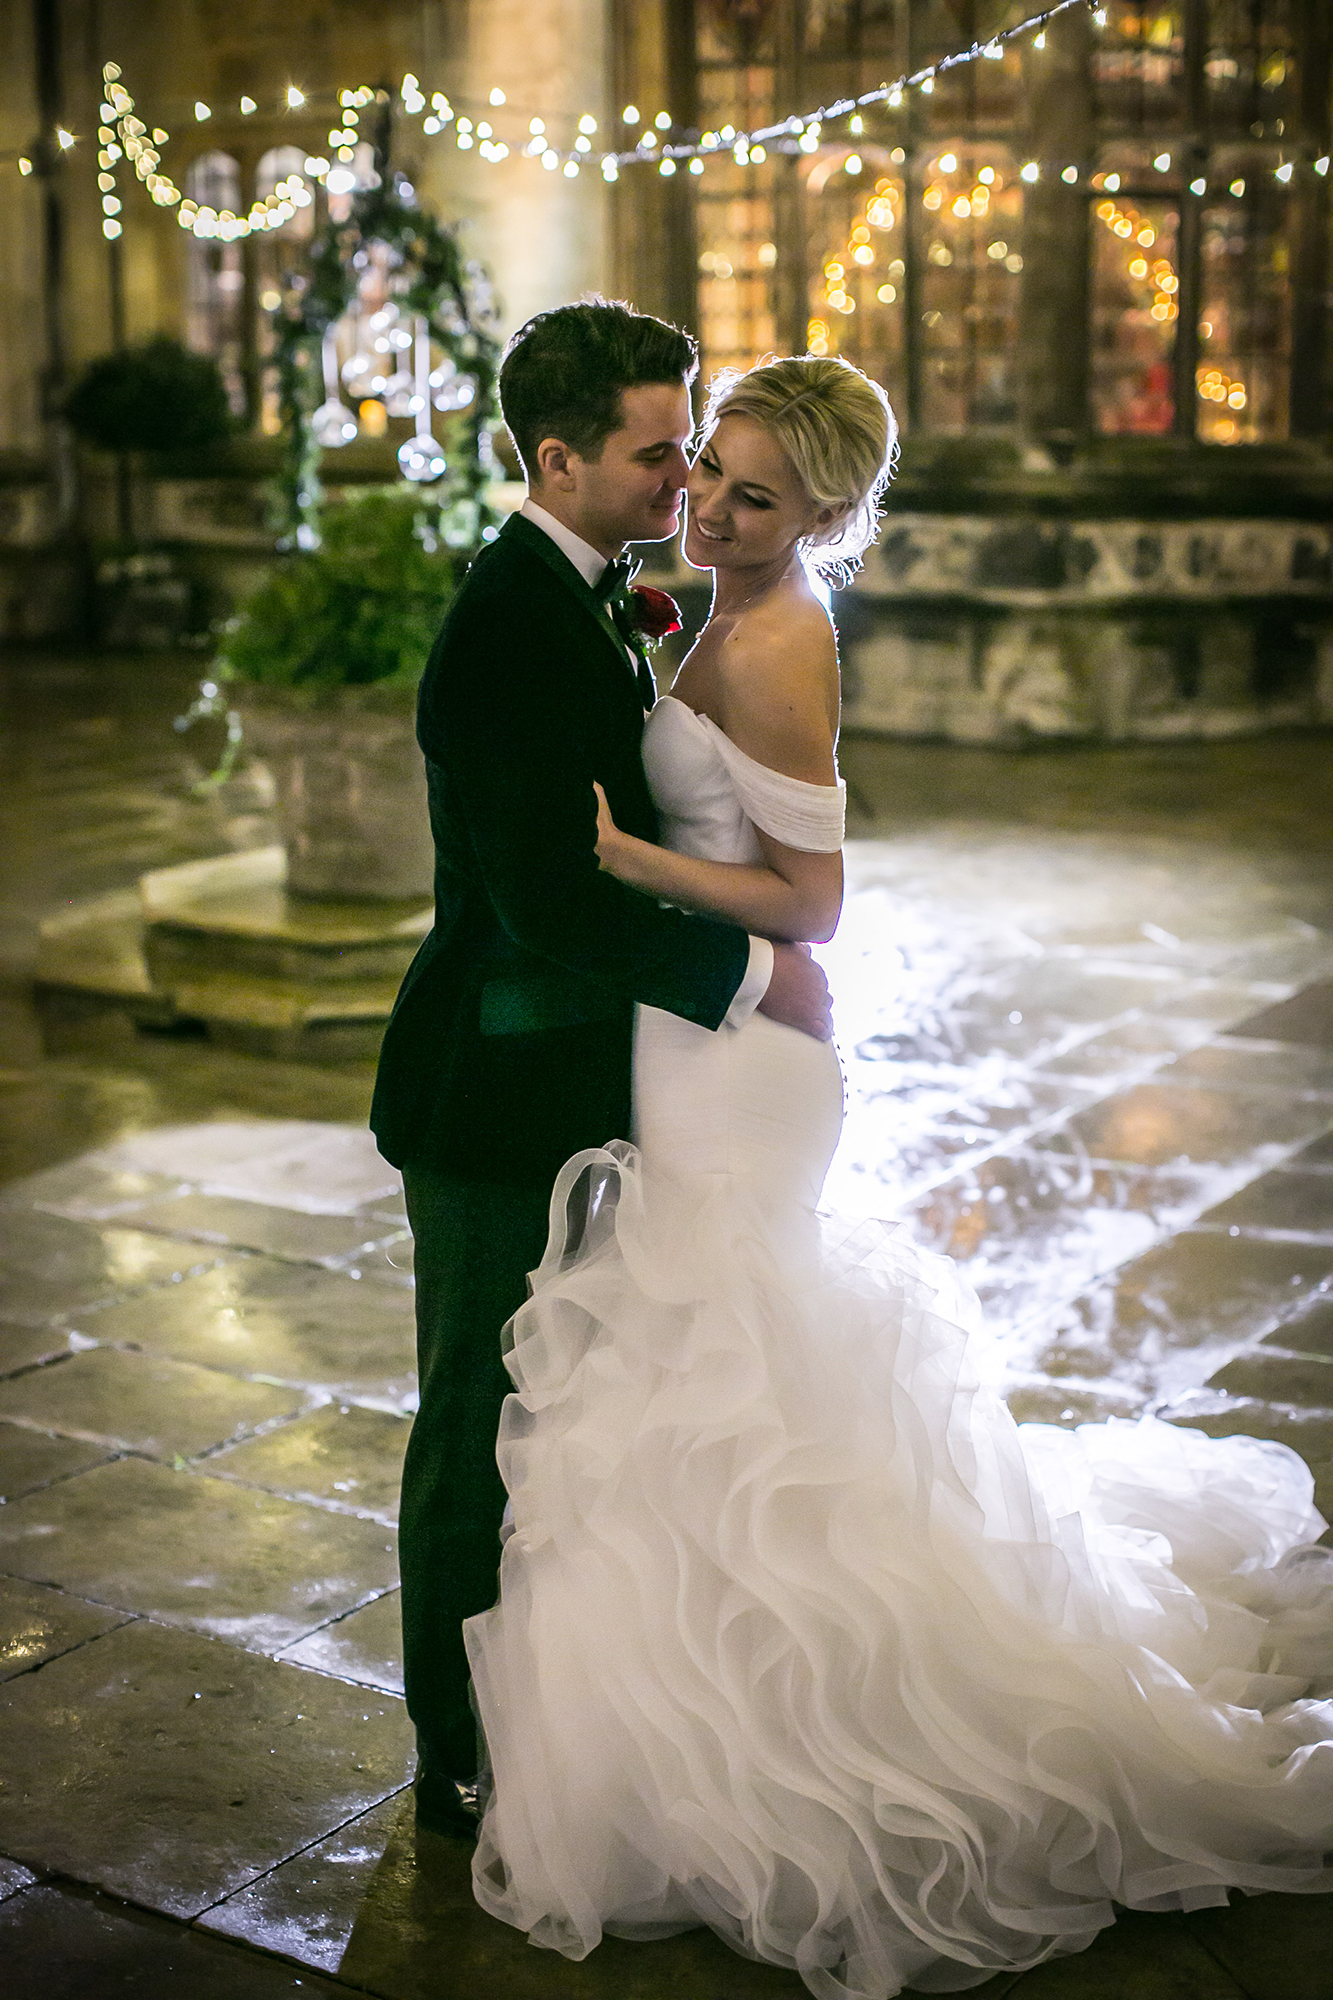 Newly married couple hug in the courtyard at Hengrave Hall